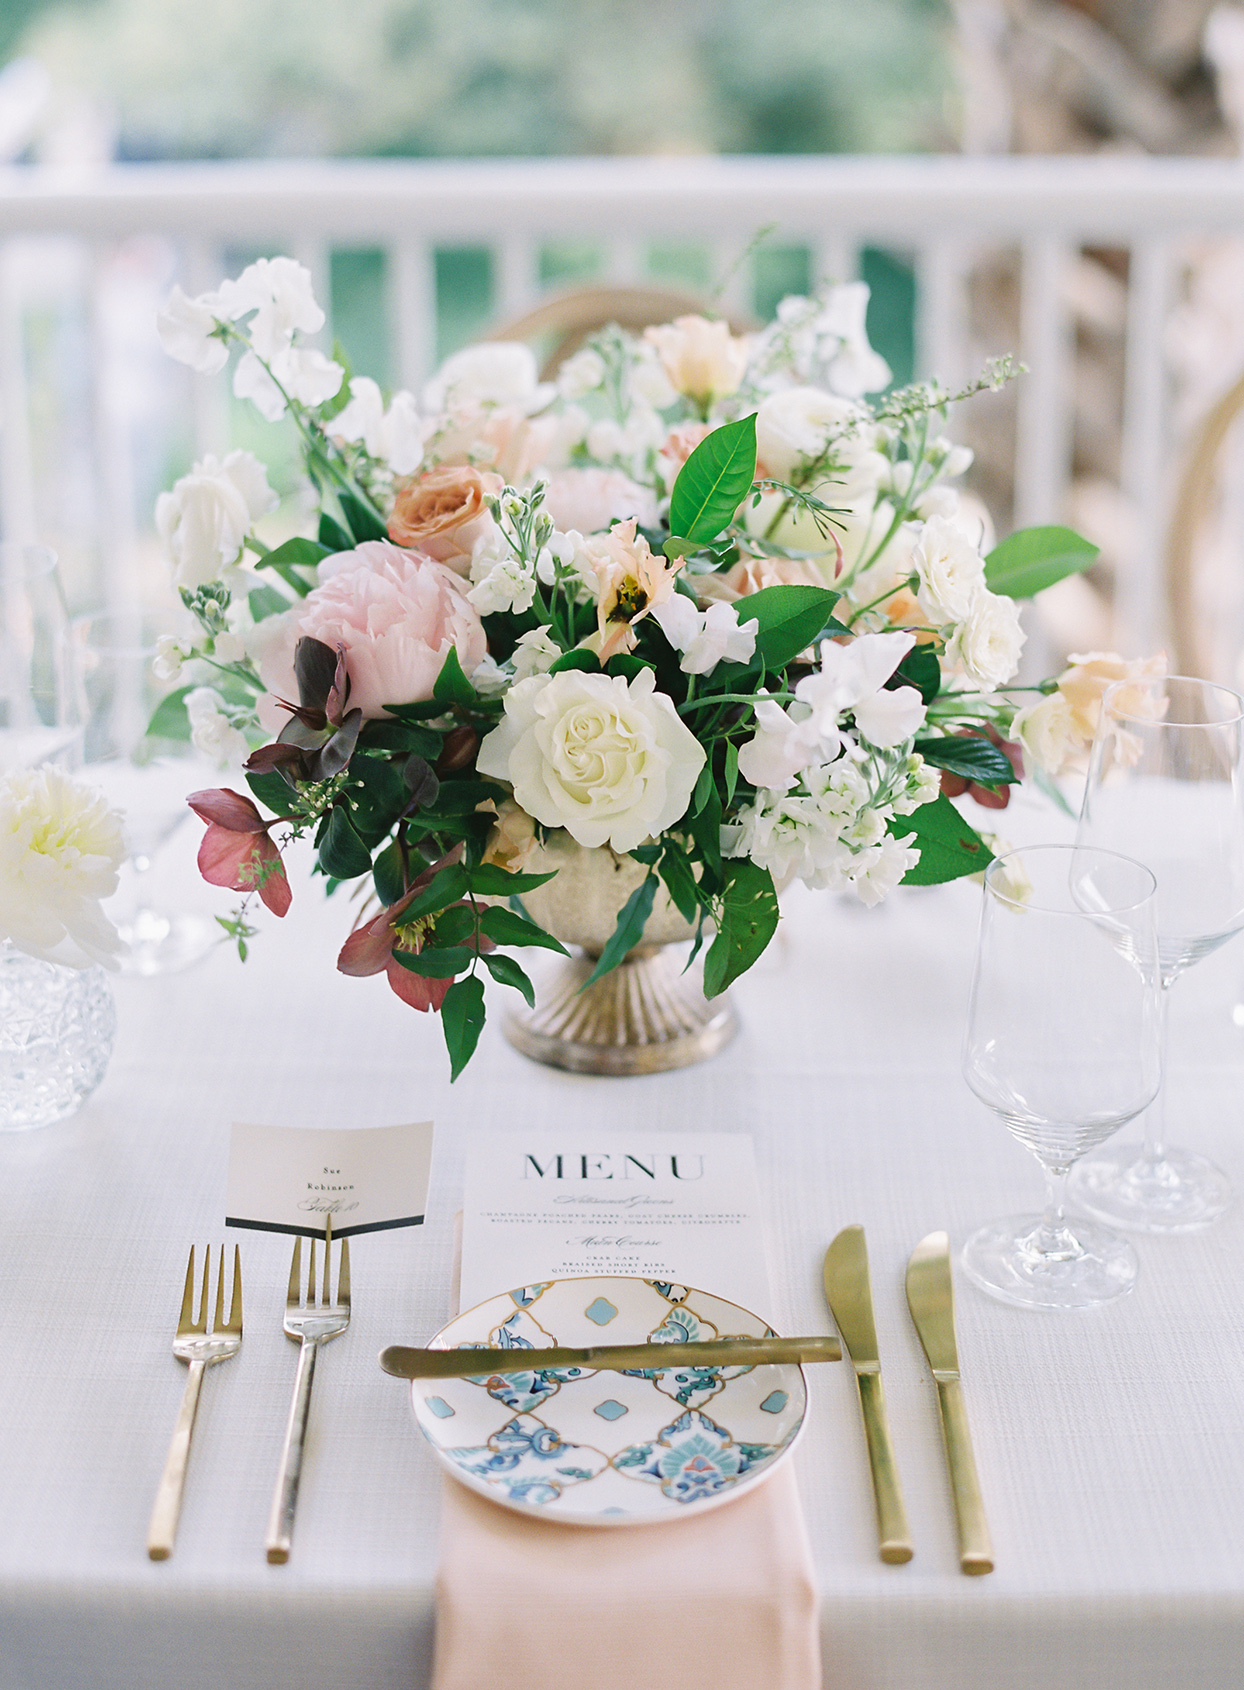 paula terence wedding place setting and floral centerpiece